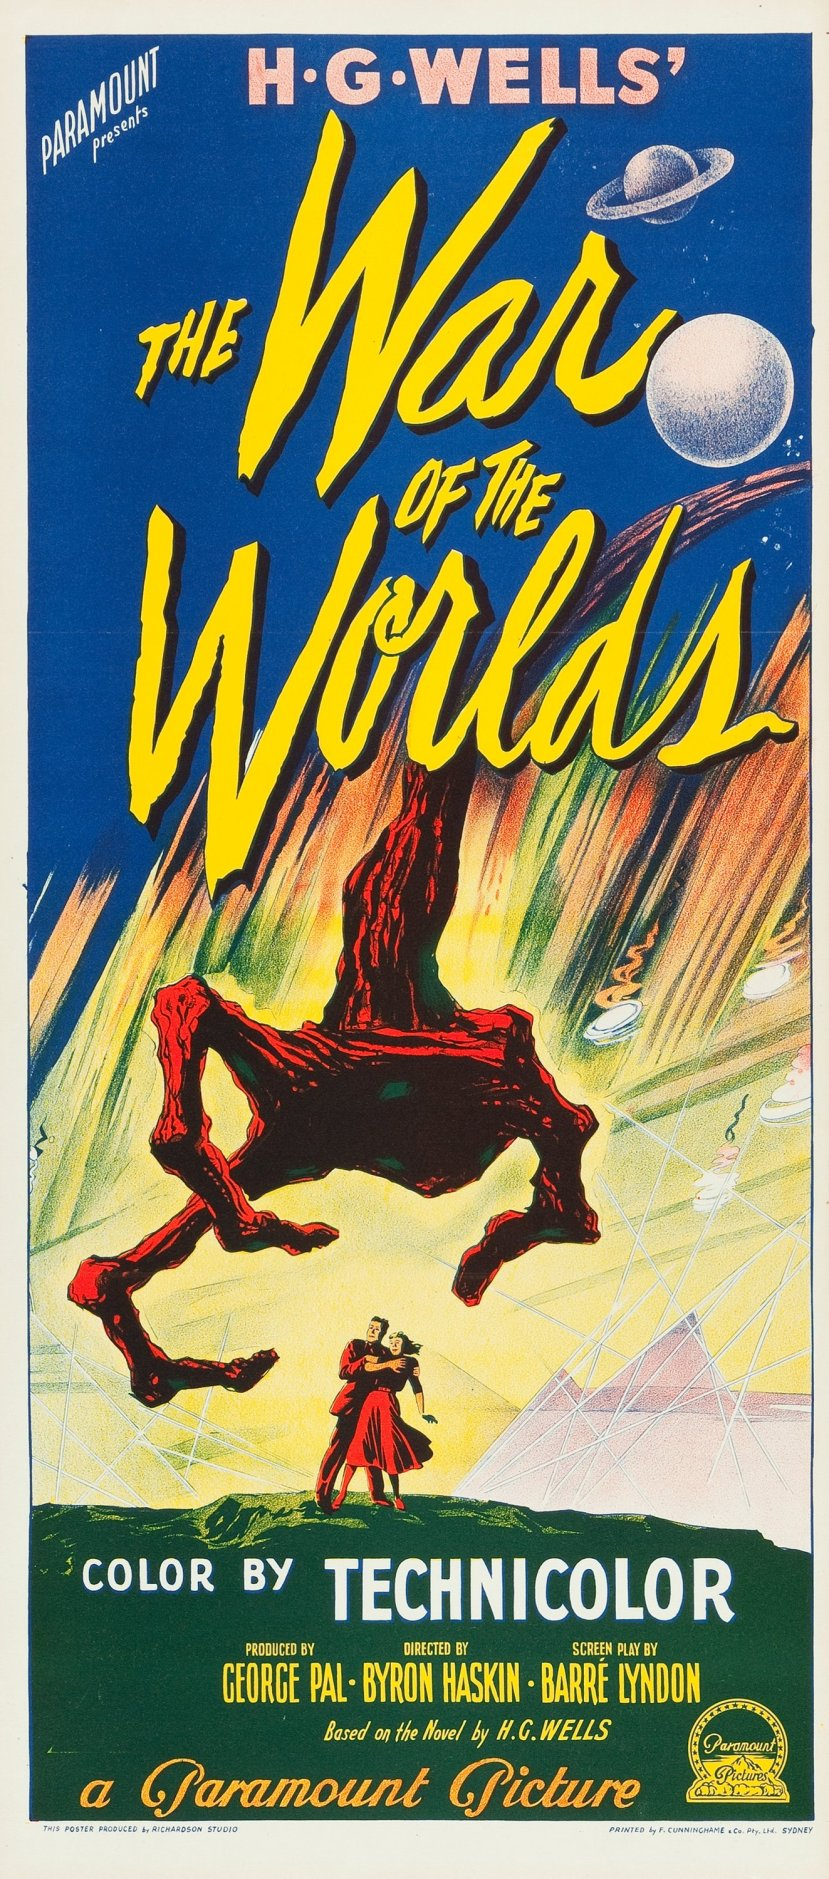 The War of the Worlds 10